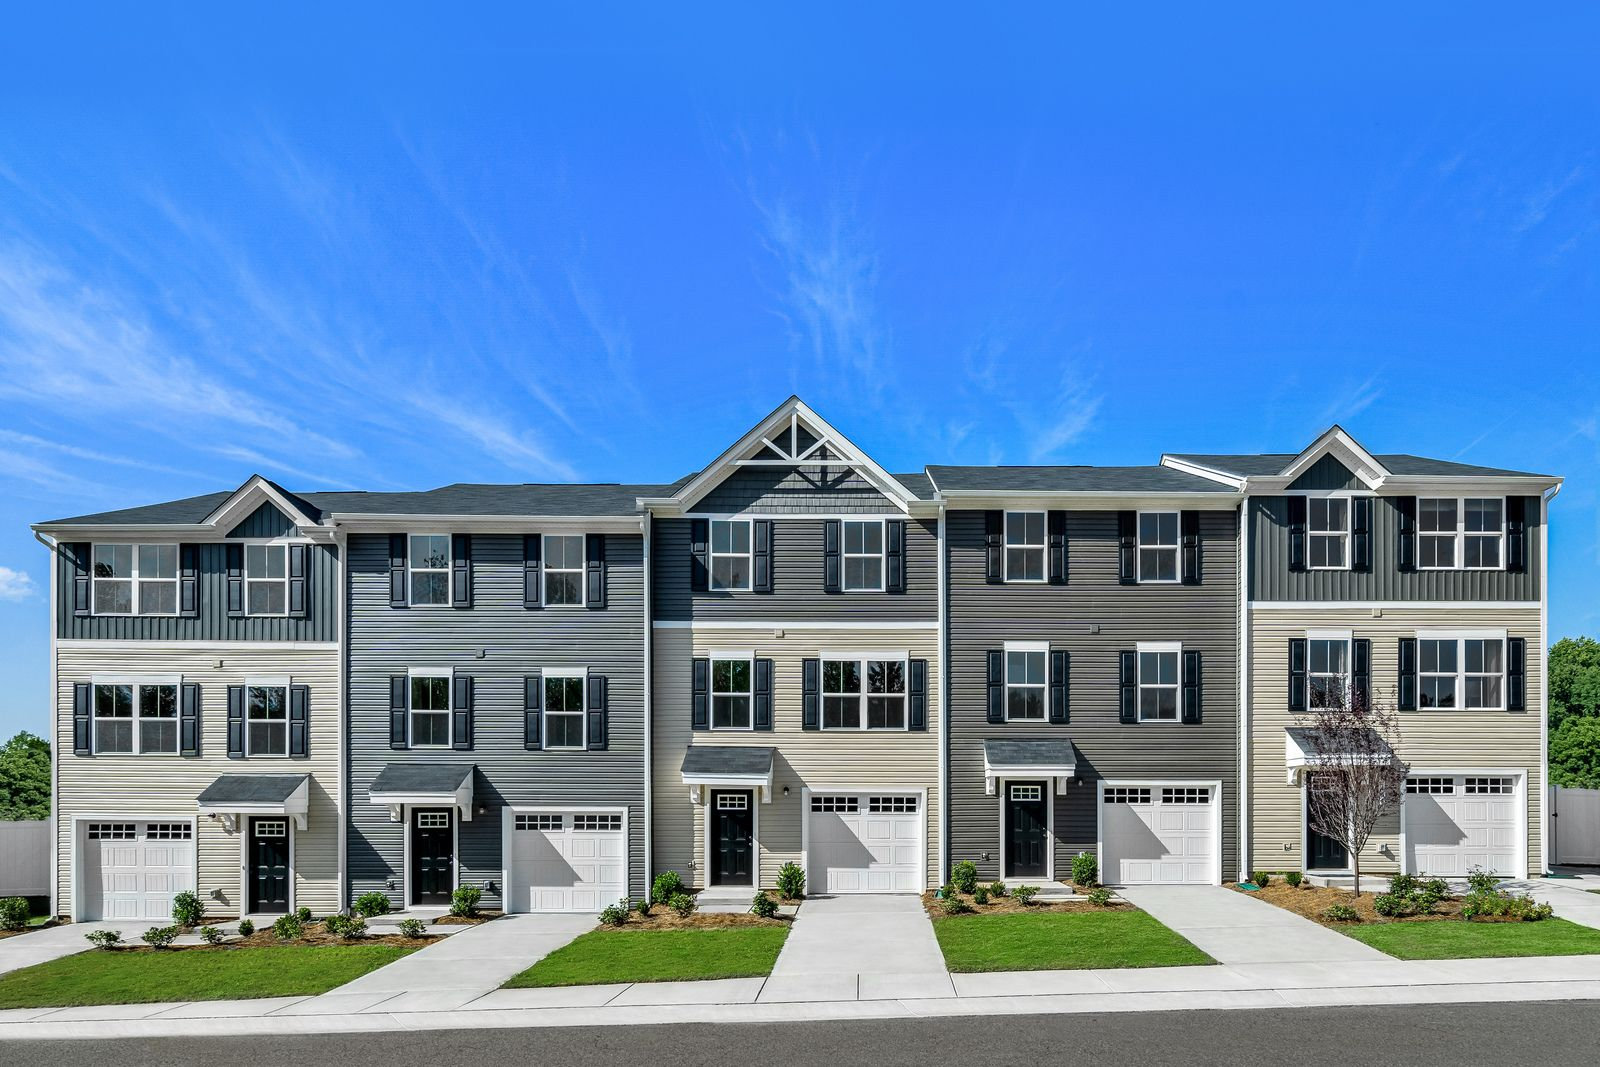 The most affordable new homes in the area offering a low-maintenance lifestyle. From the $170s:Live minutes to Travelers Rest and walking distance to the Swamp Rabbit Trail. Join the VIP List for exclusive offers.